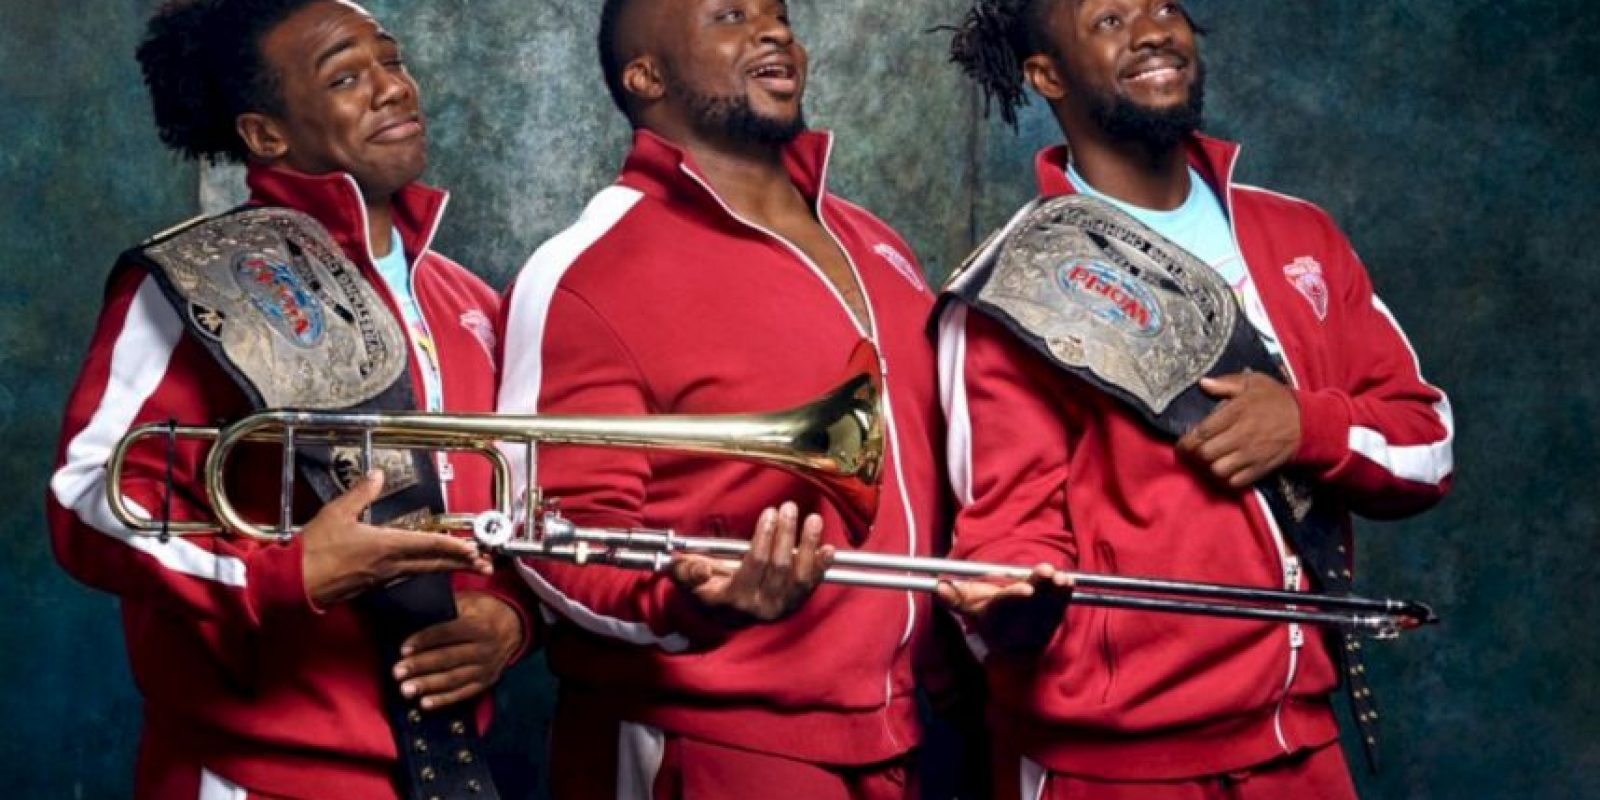 The New Day Foto: WWE